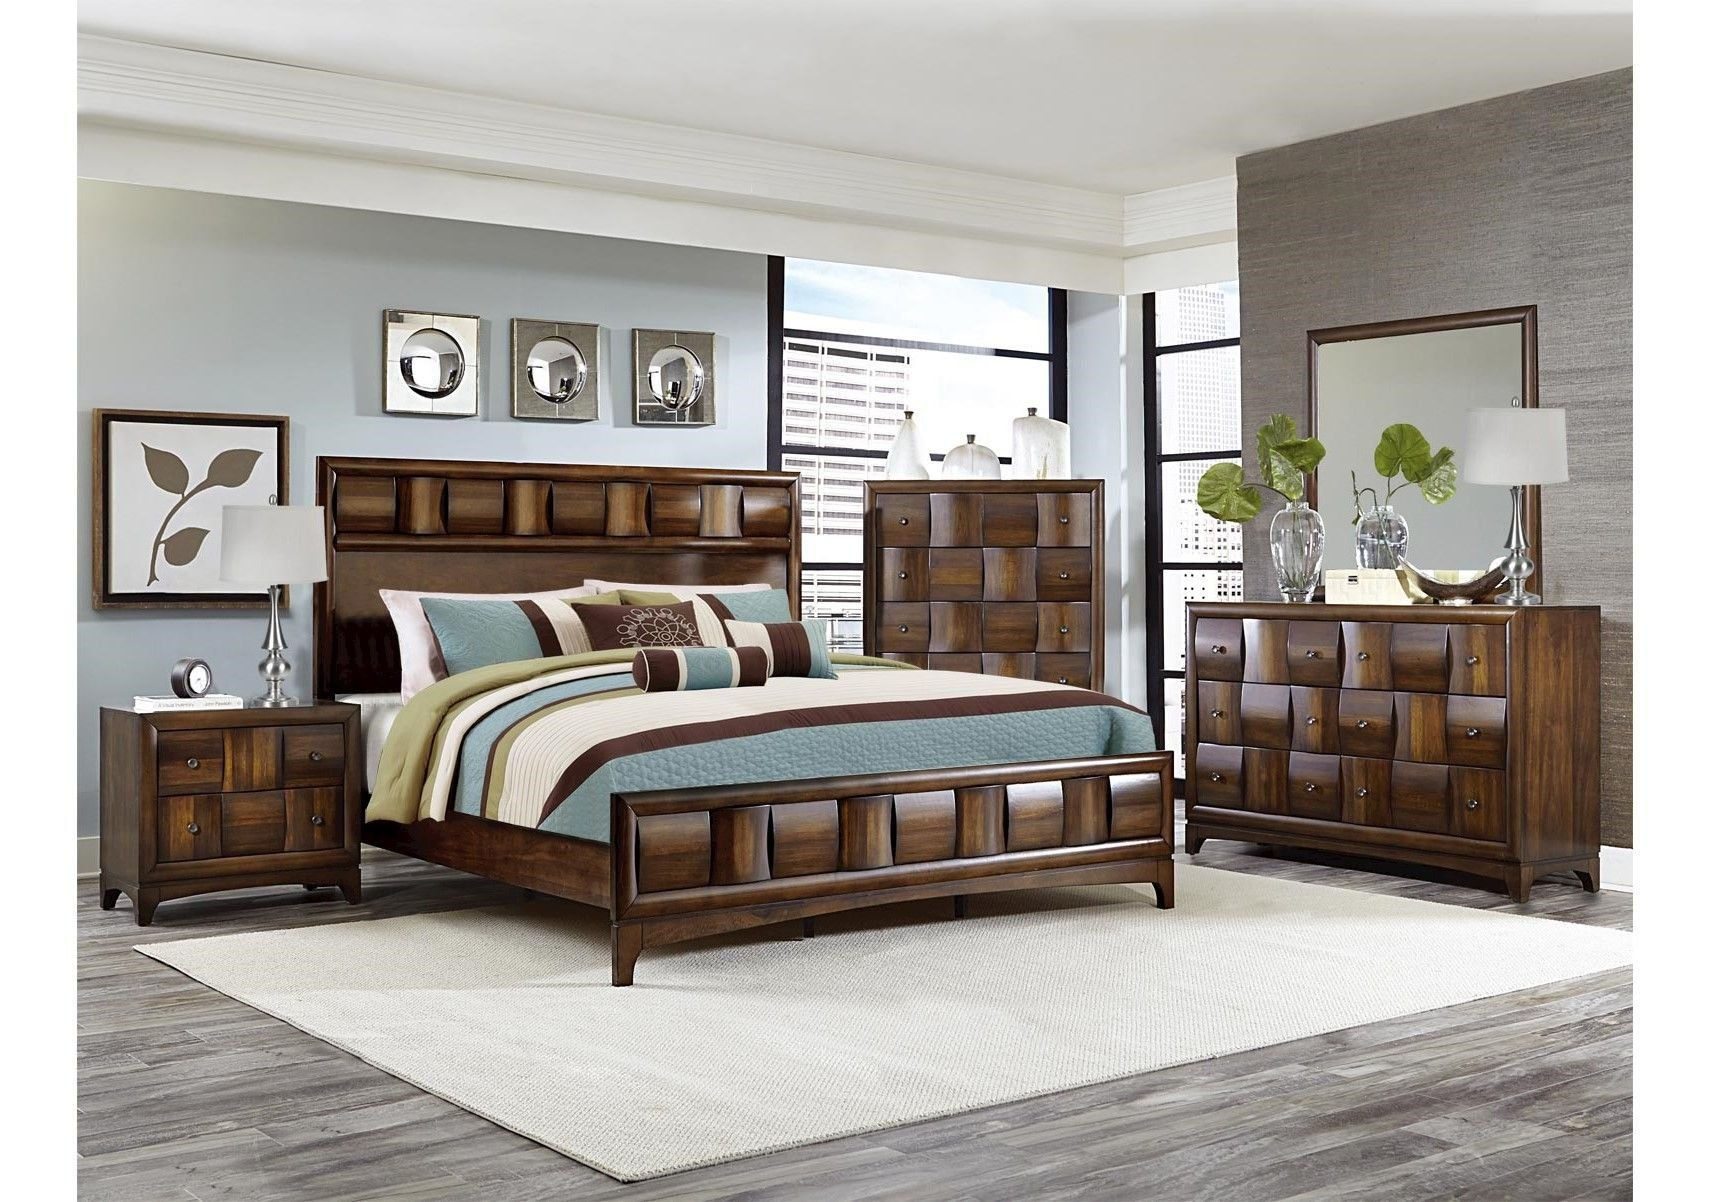 Best Lacks Porter 4 Pc Queen Bedroom Set Transitional Style With Pictures